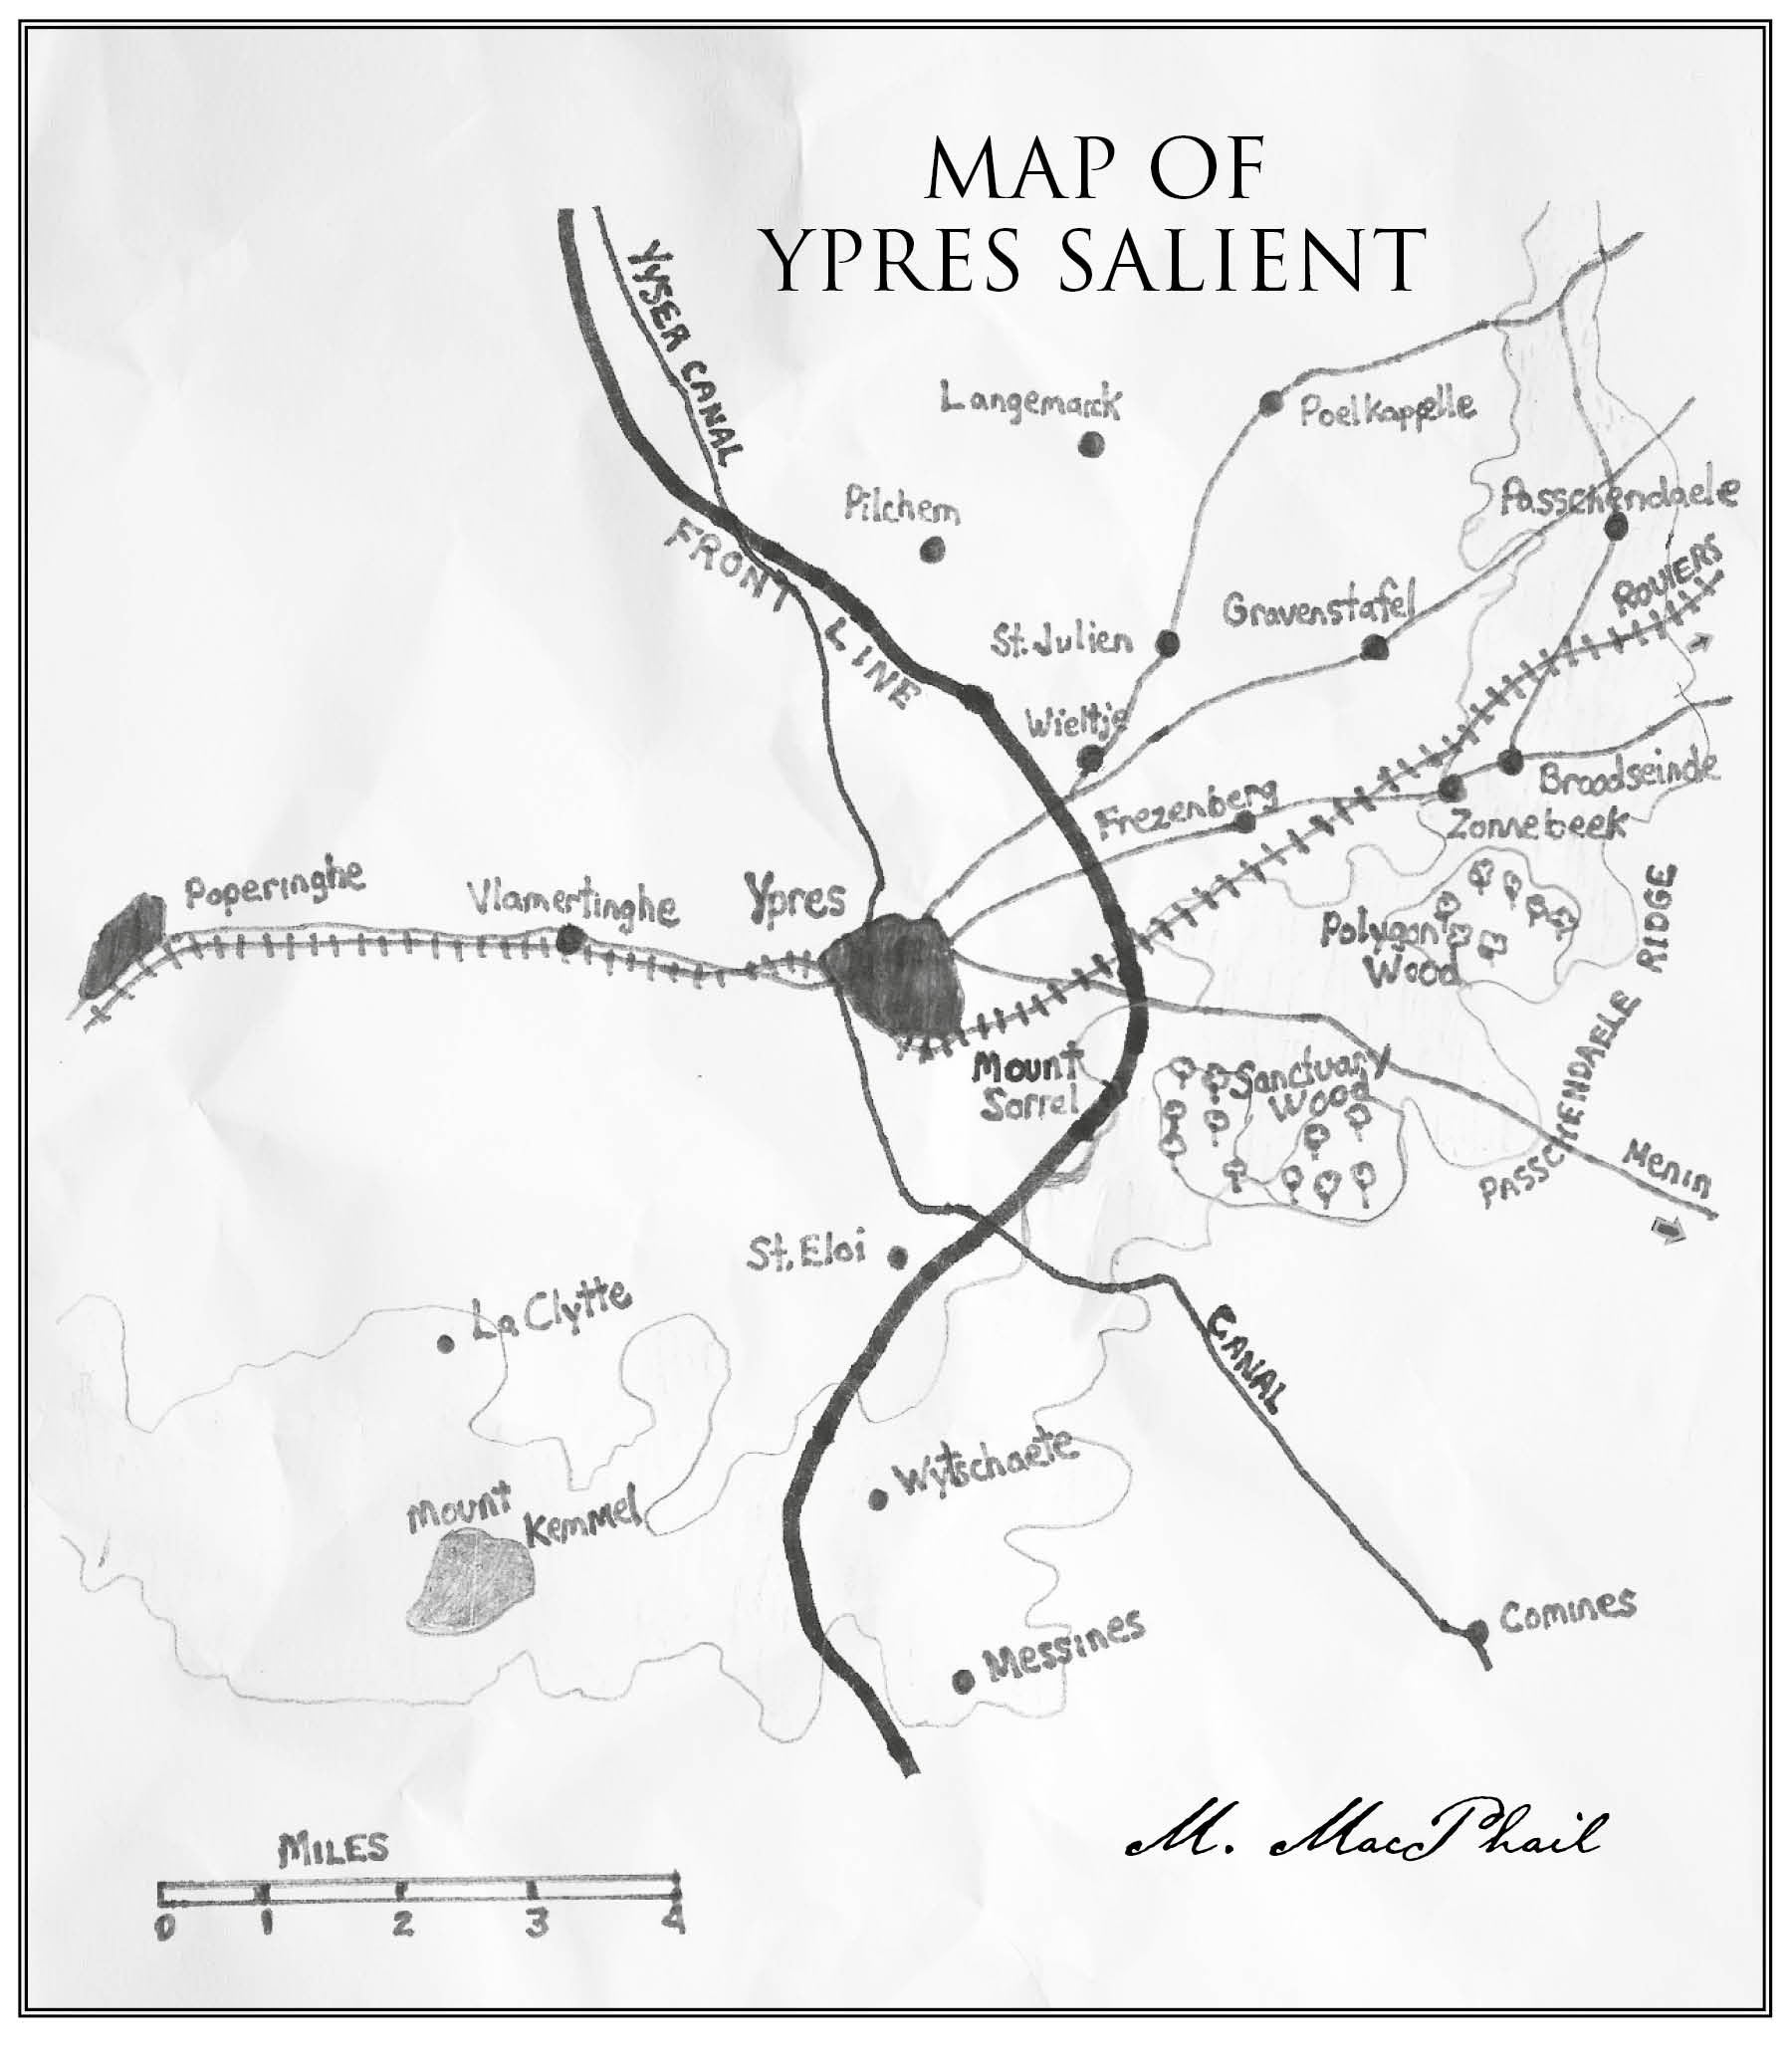 M Marcel phail Map of Ypres salient 1914 Maps5